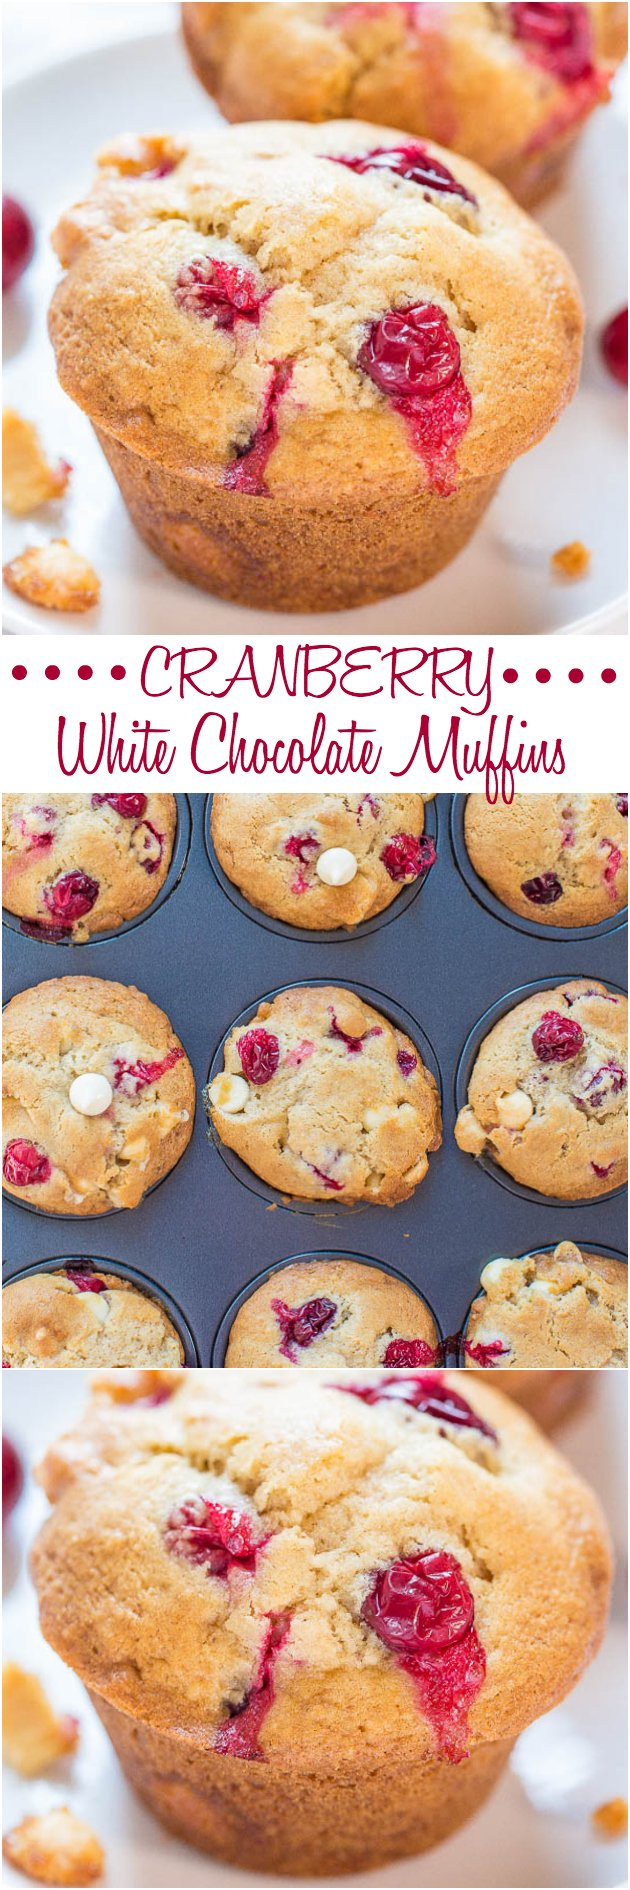 White Chocolate Cranberry Muffins — Soft, fluffy, and bursting with cranberries in every bite! Perfect way to use your fresh cranberries!!